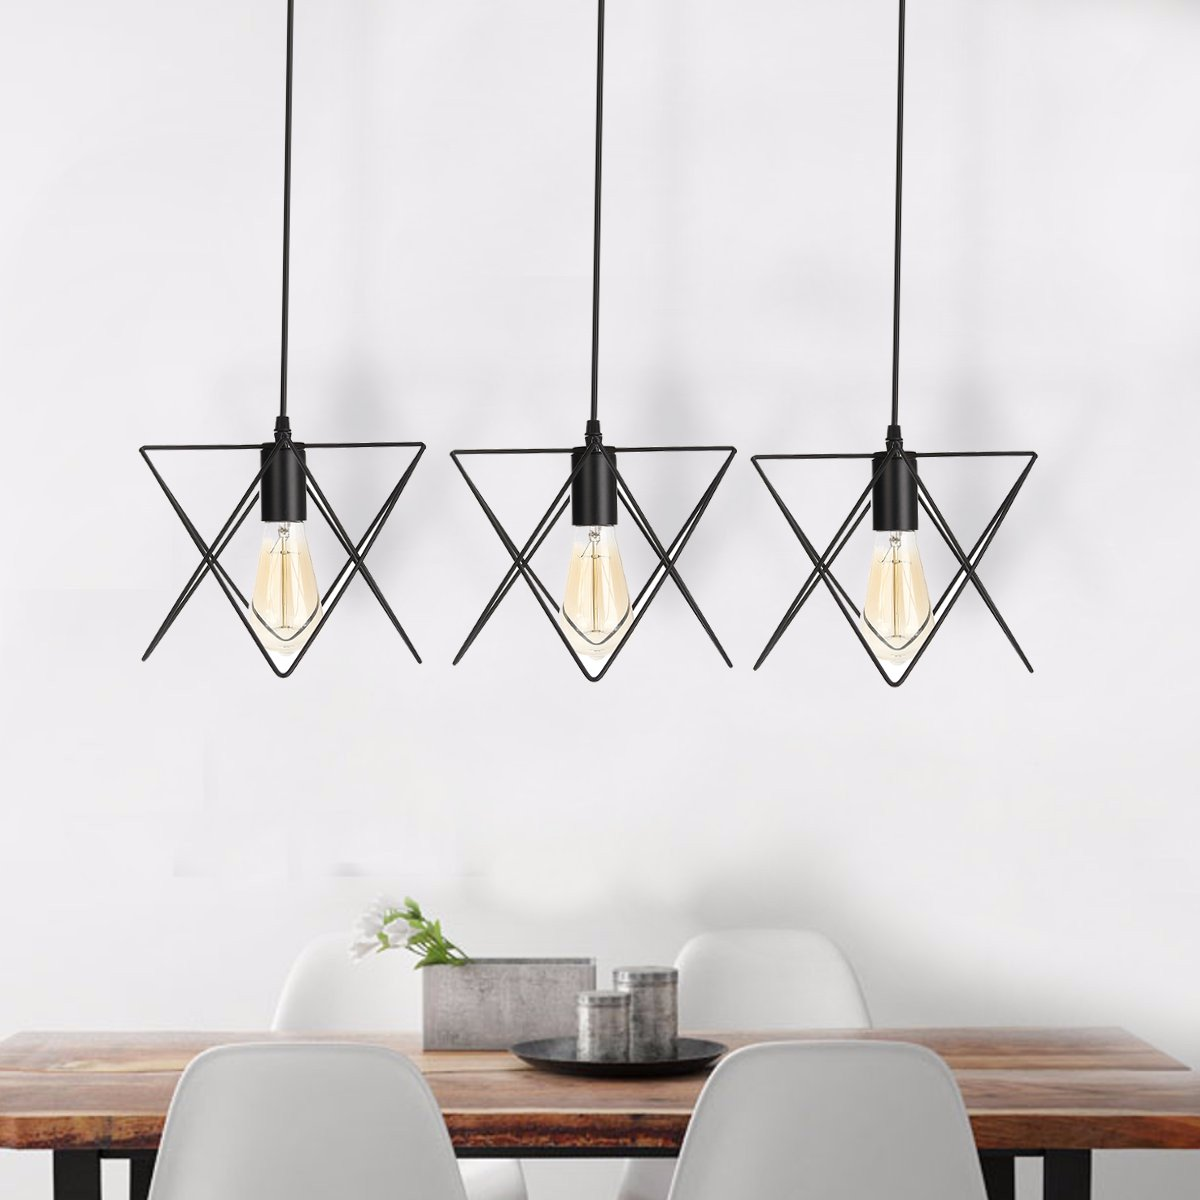 Beautiful-Ceiling-Light-Pendant-Cage-Metal-Iron-Hanging-Industrial-Chandelier